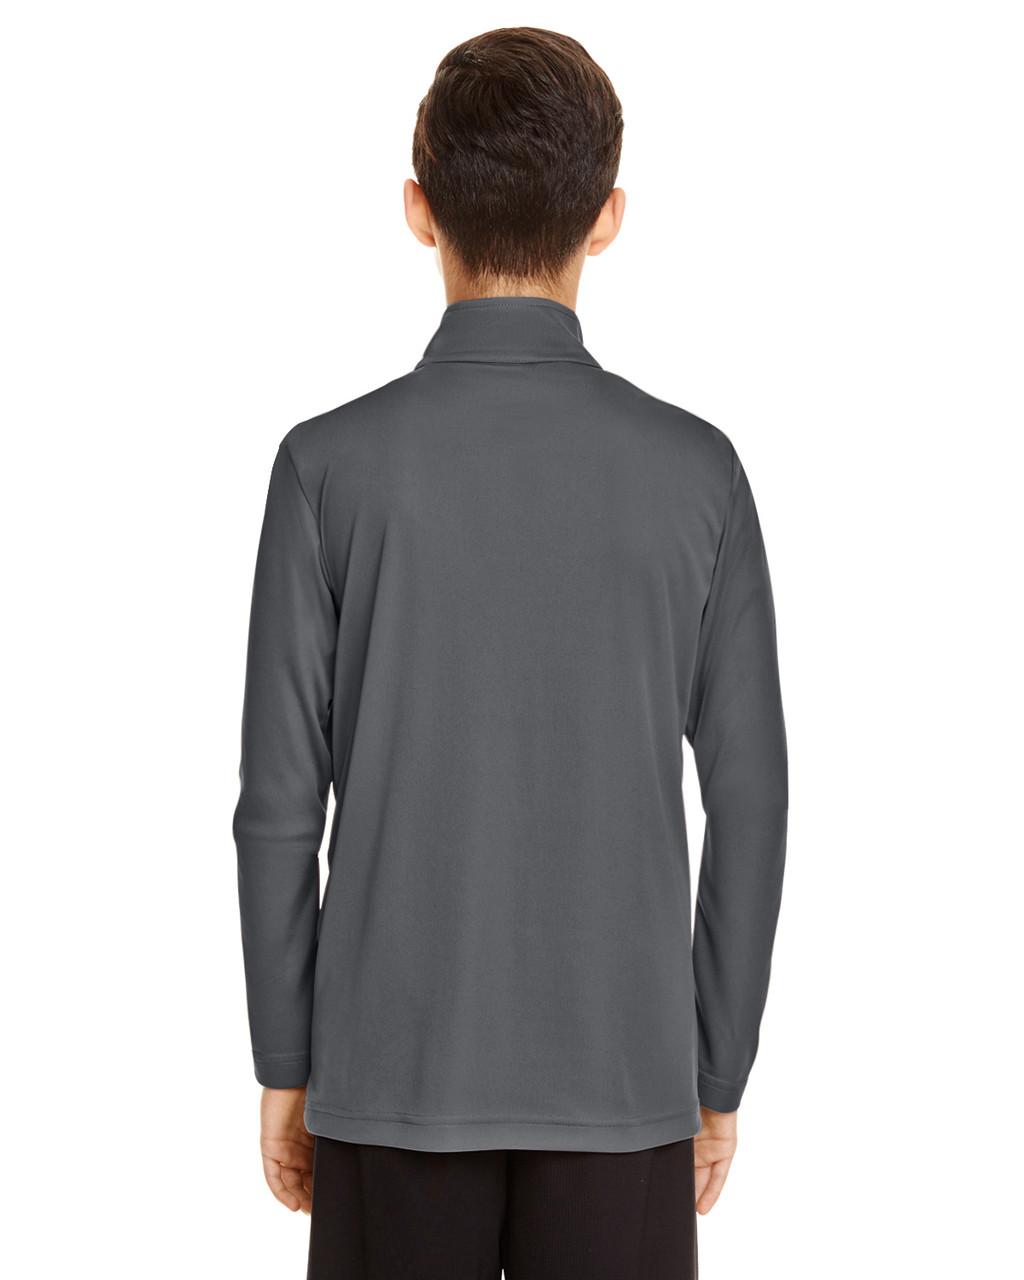 Sport Graphite - TT31Y Team 365 Youth Zone Performance Quarter-Zip Shirt